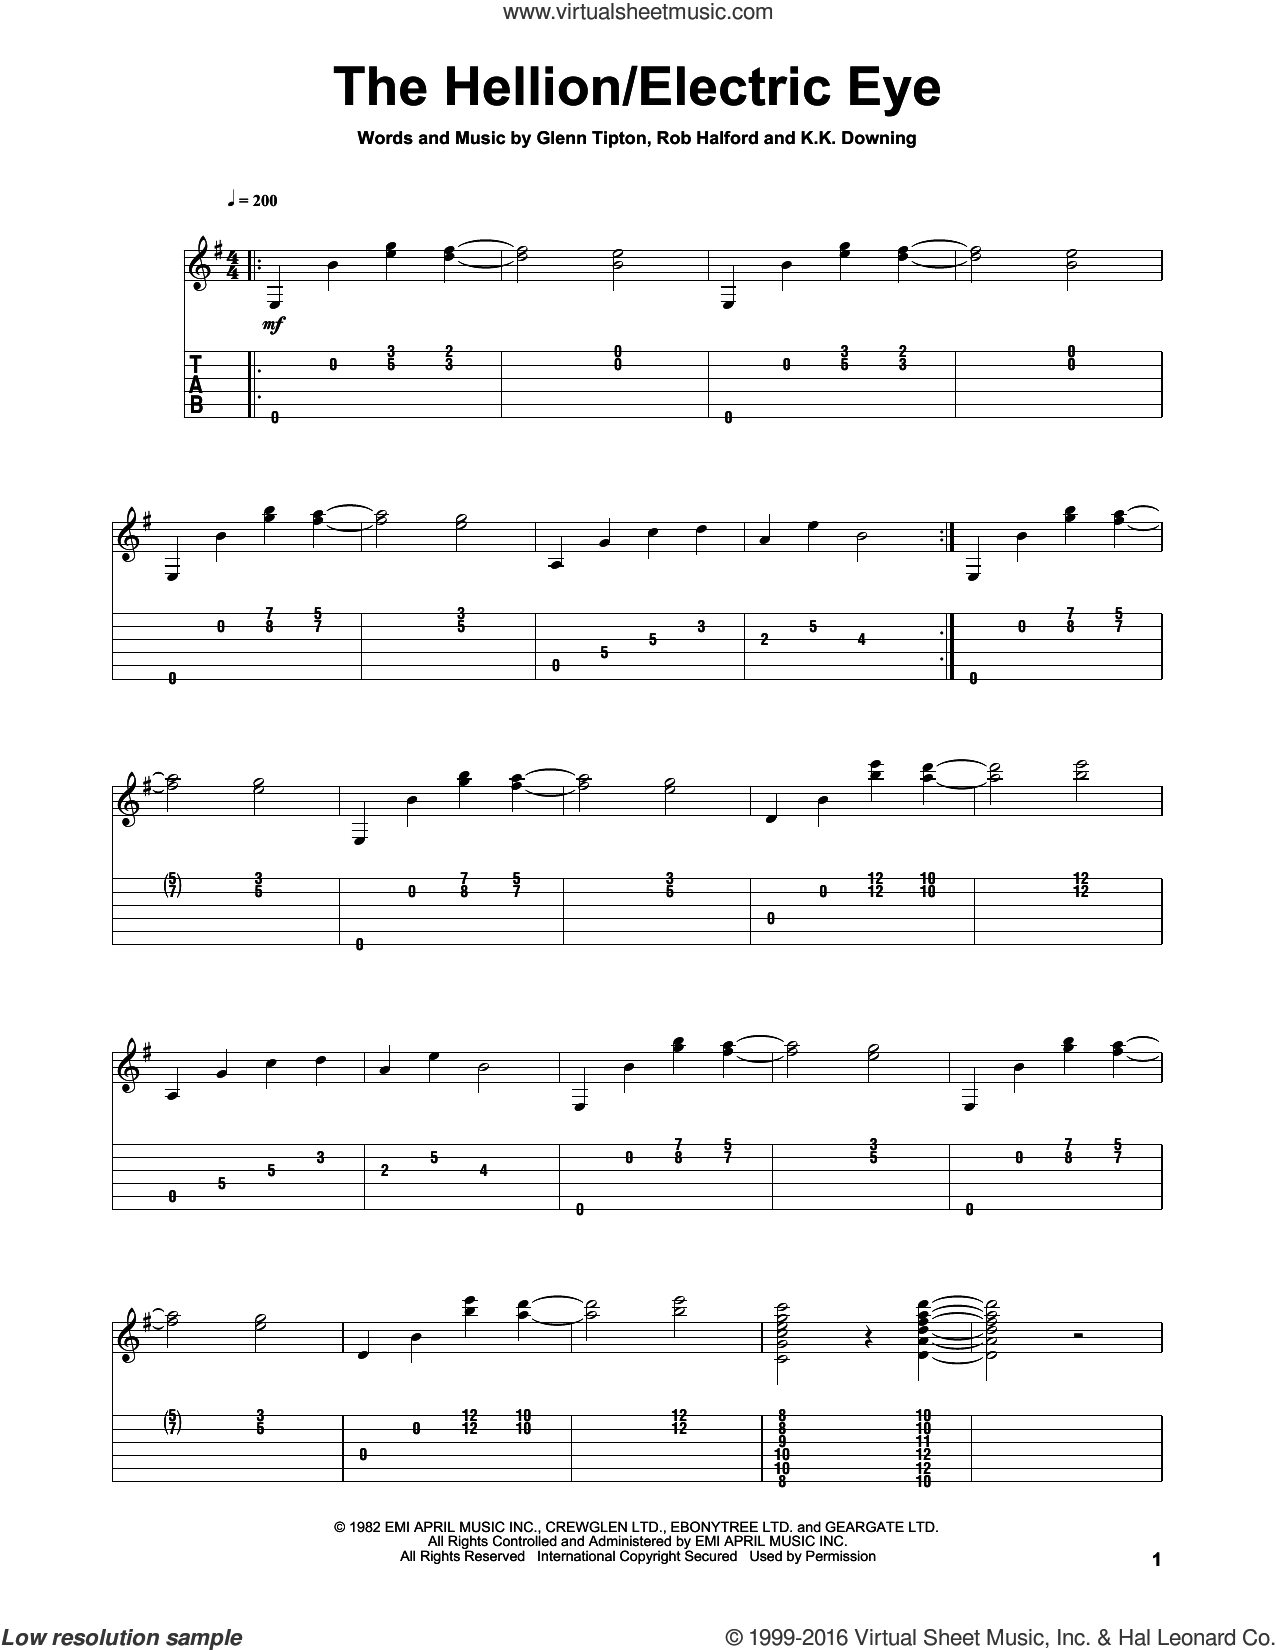 Electric Eye sheet music for guitar solo by Judas Priest, Ben Woods, Glenn Tipton, K.K. Downing and Rob Halford, intermediate skill level